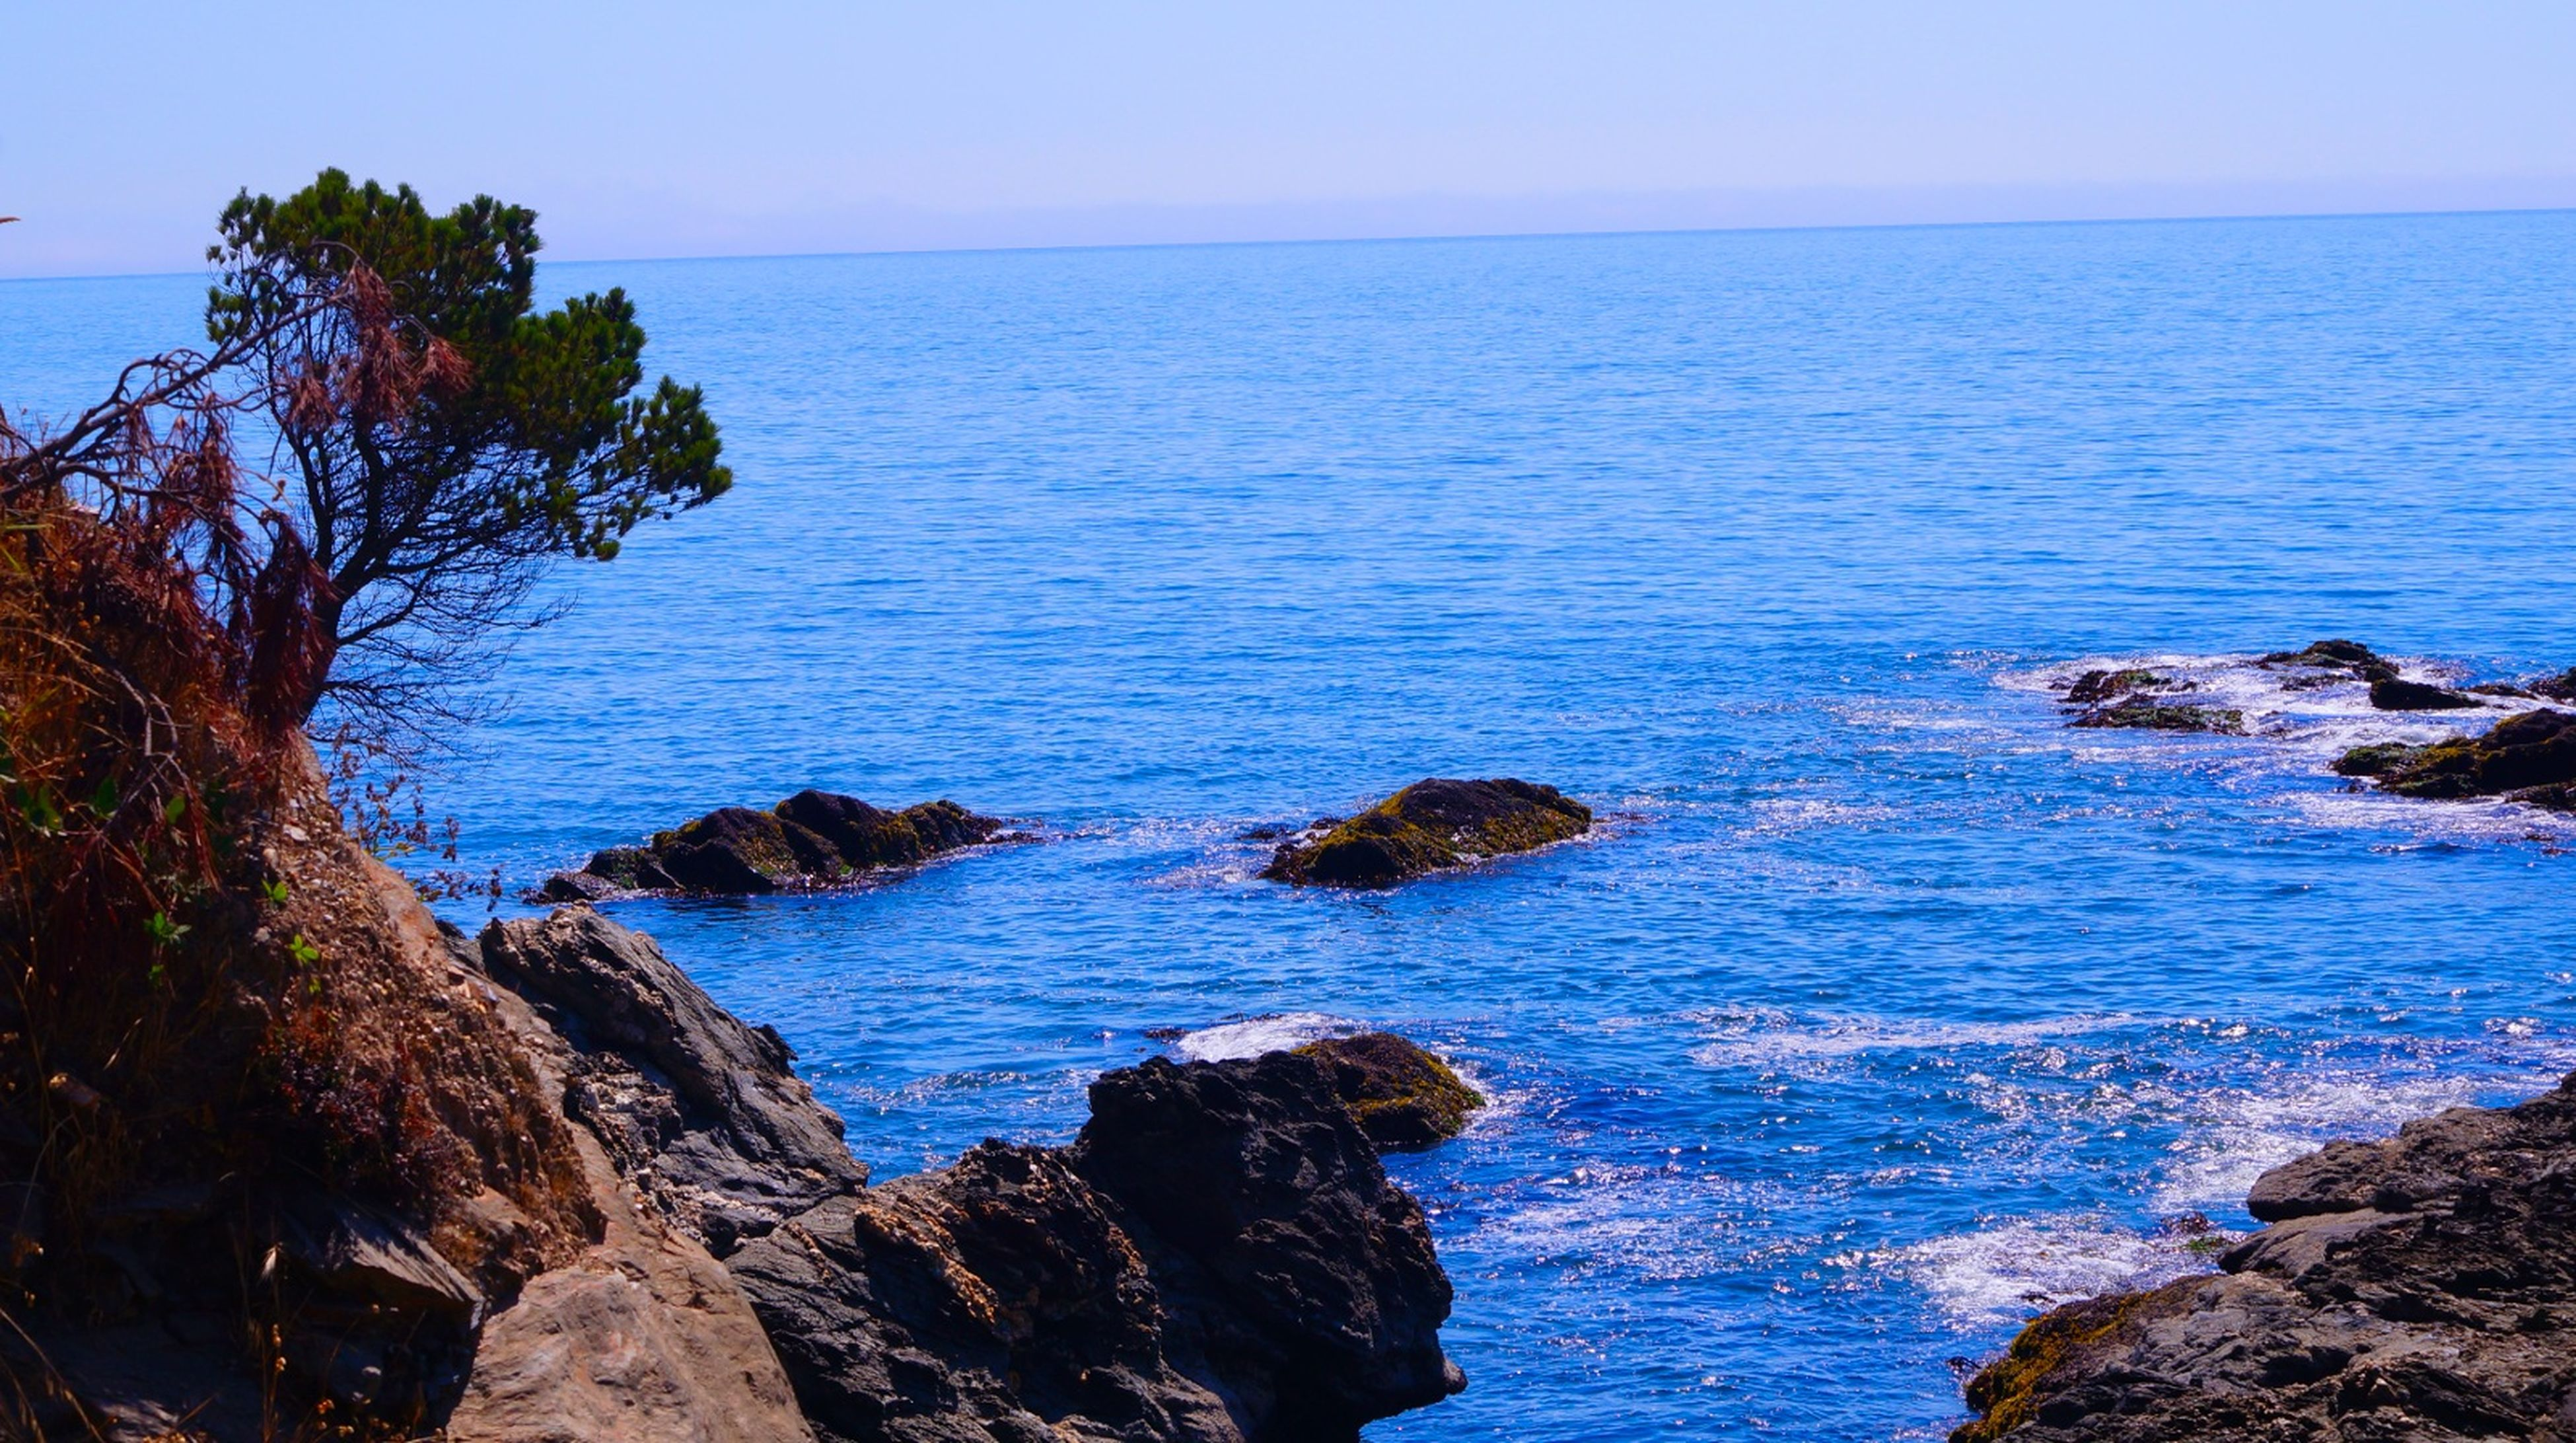 sea, horizon over water, water, tranquil scene, scenics, beauty in nature, tranquility, rock - object, blue, nature, beach, rock formation, sky, shore, clear sky, idyllic, coastline, rock, cliff, seascape